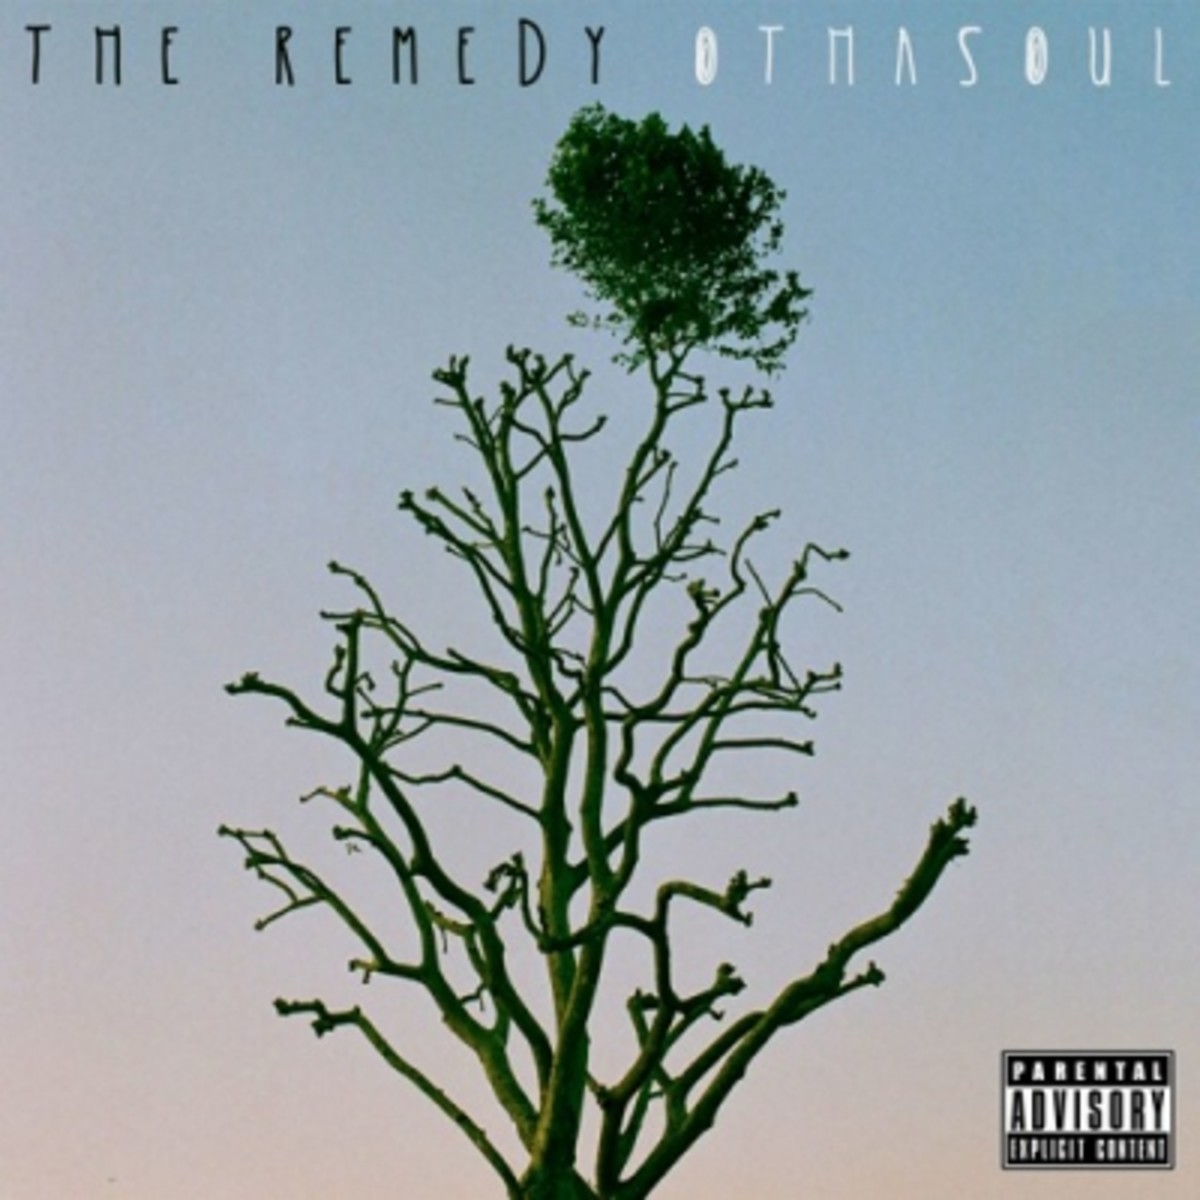 othasoul-the-remedy.jpg